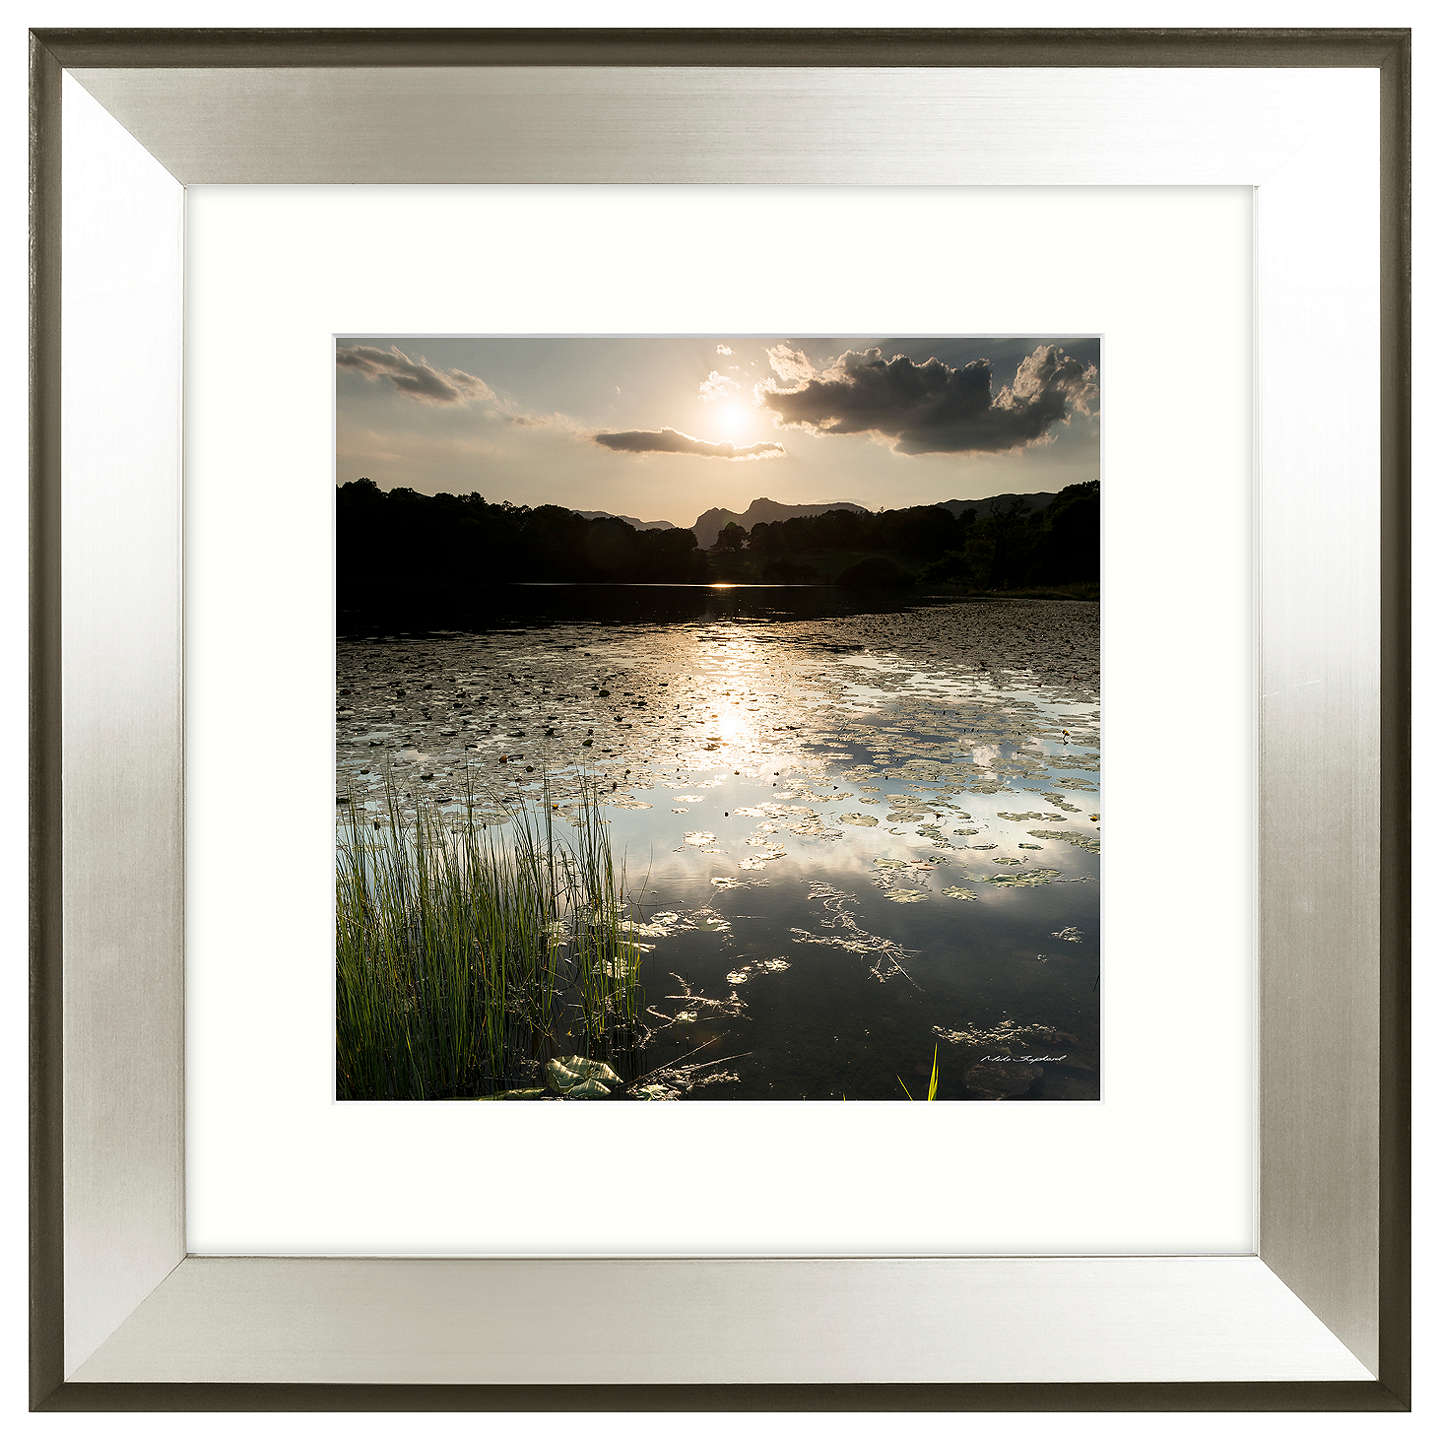 BuyMike Shepherd - Lakeland Lillies 1 Framed Print, 51 x 51cm Online at johnlewis.com